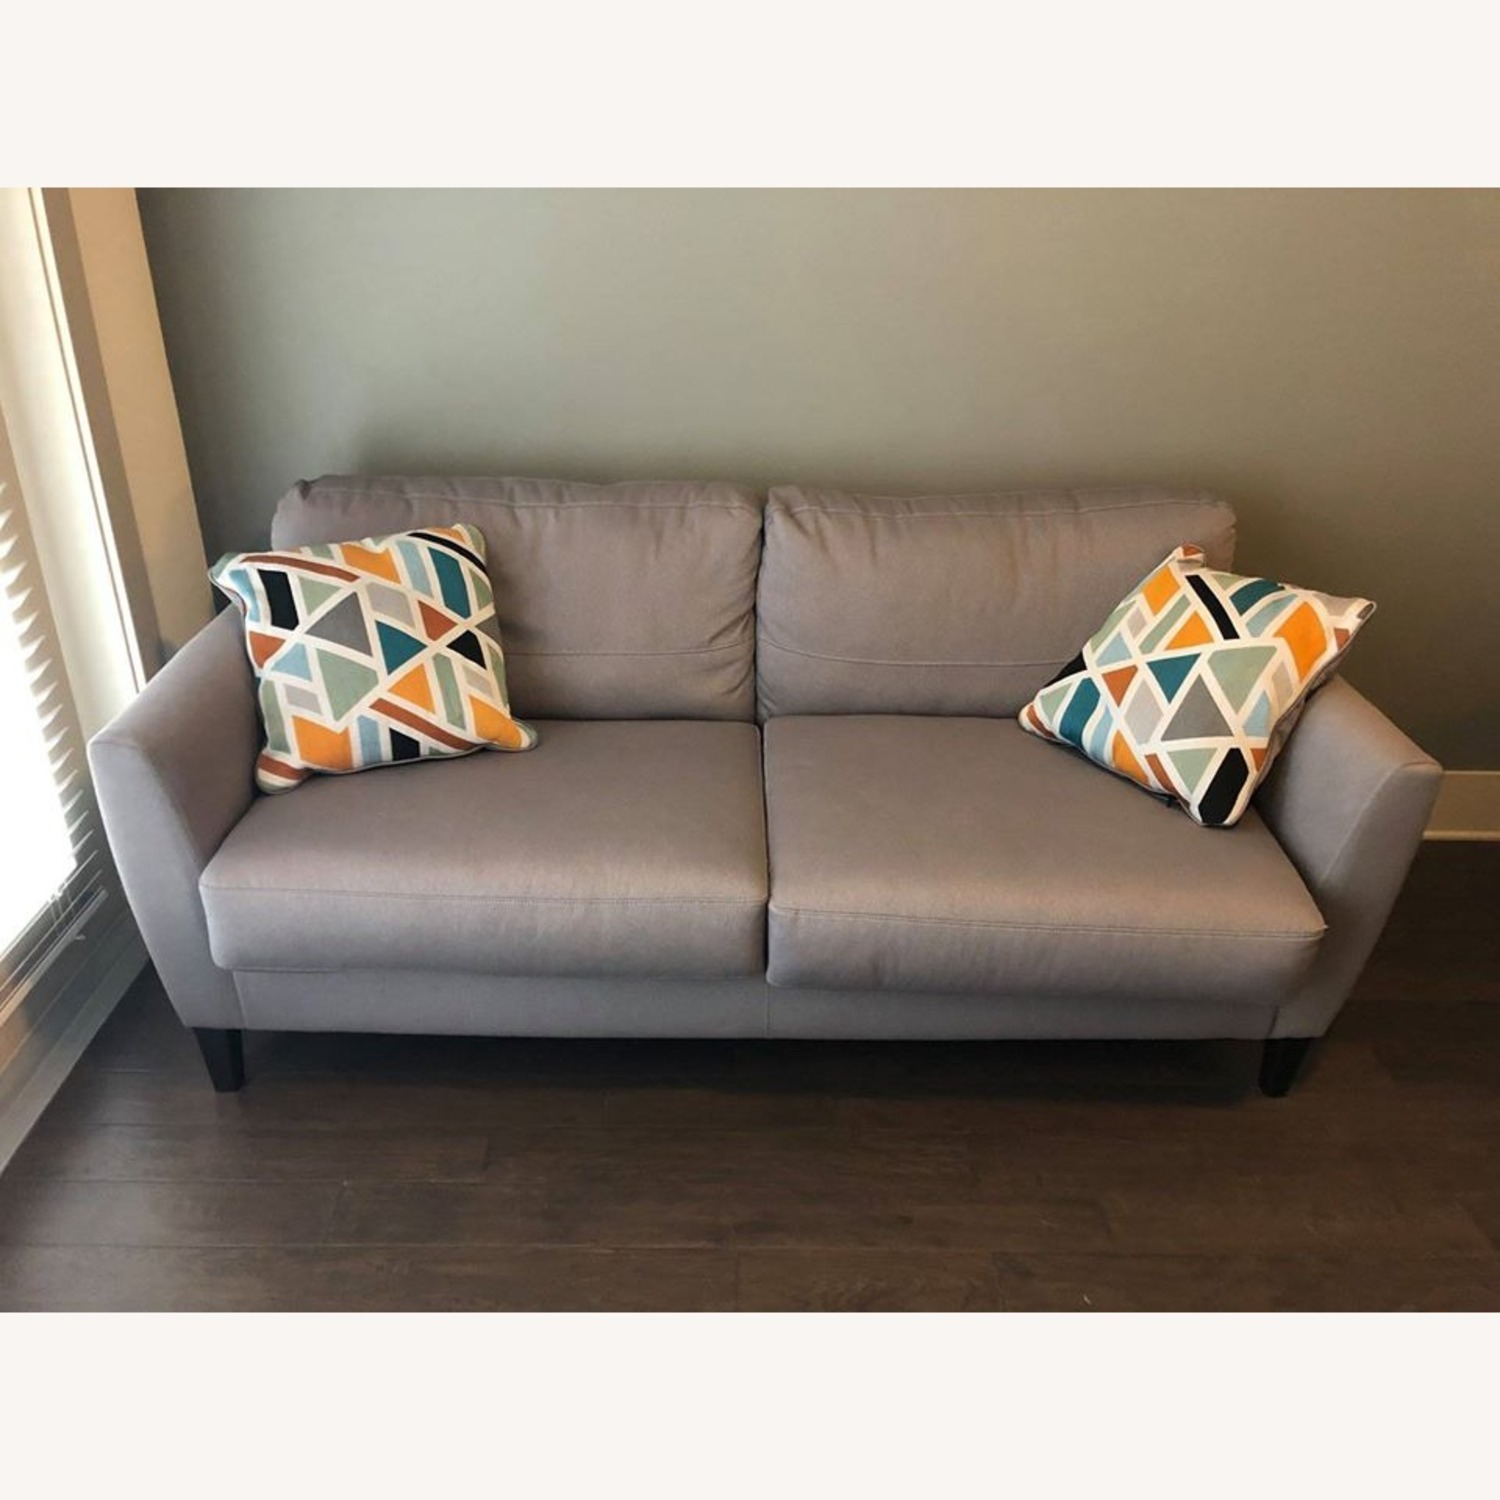 Ashley Furniture Comfortable Grey Couch - image-1